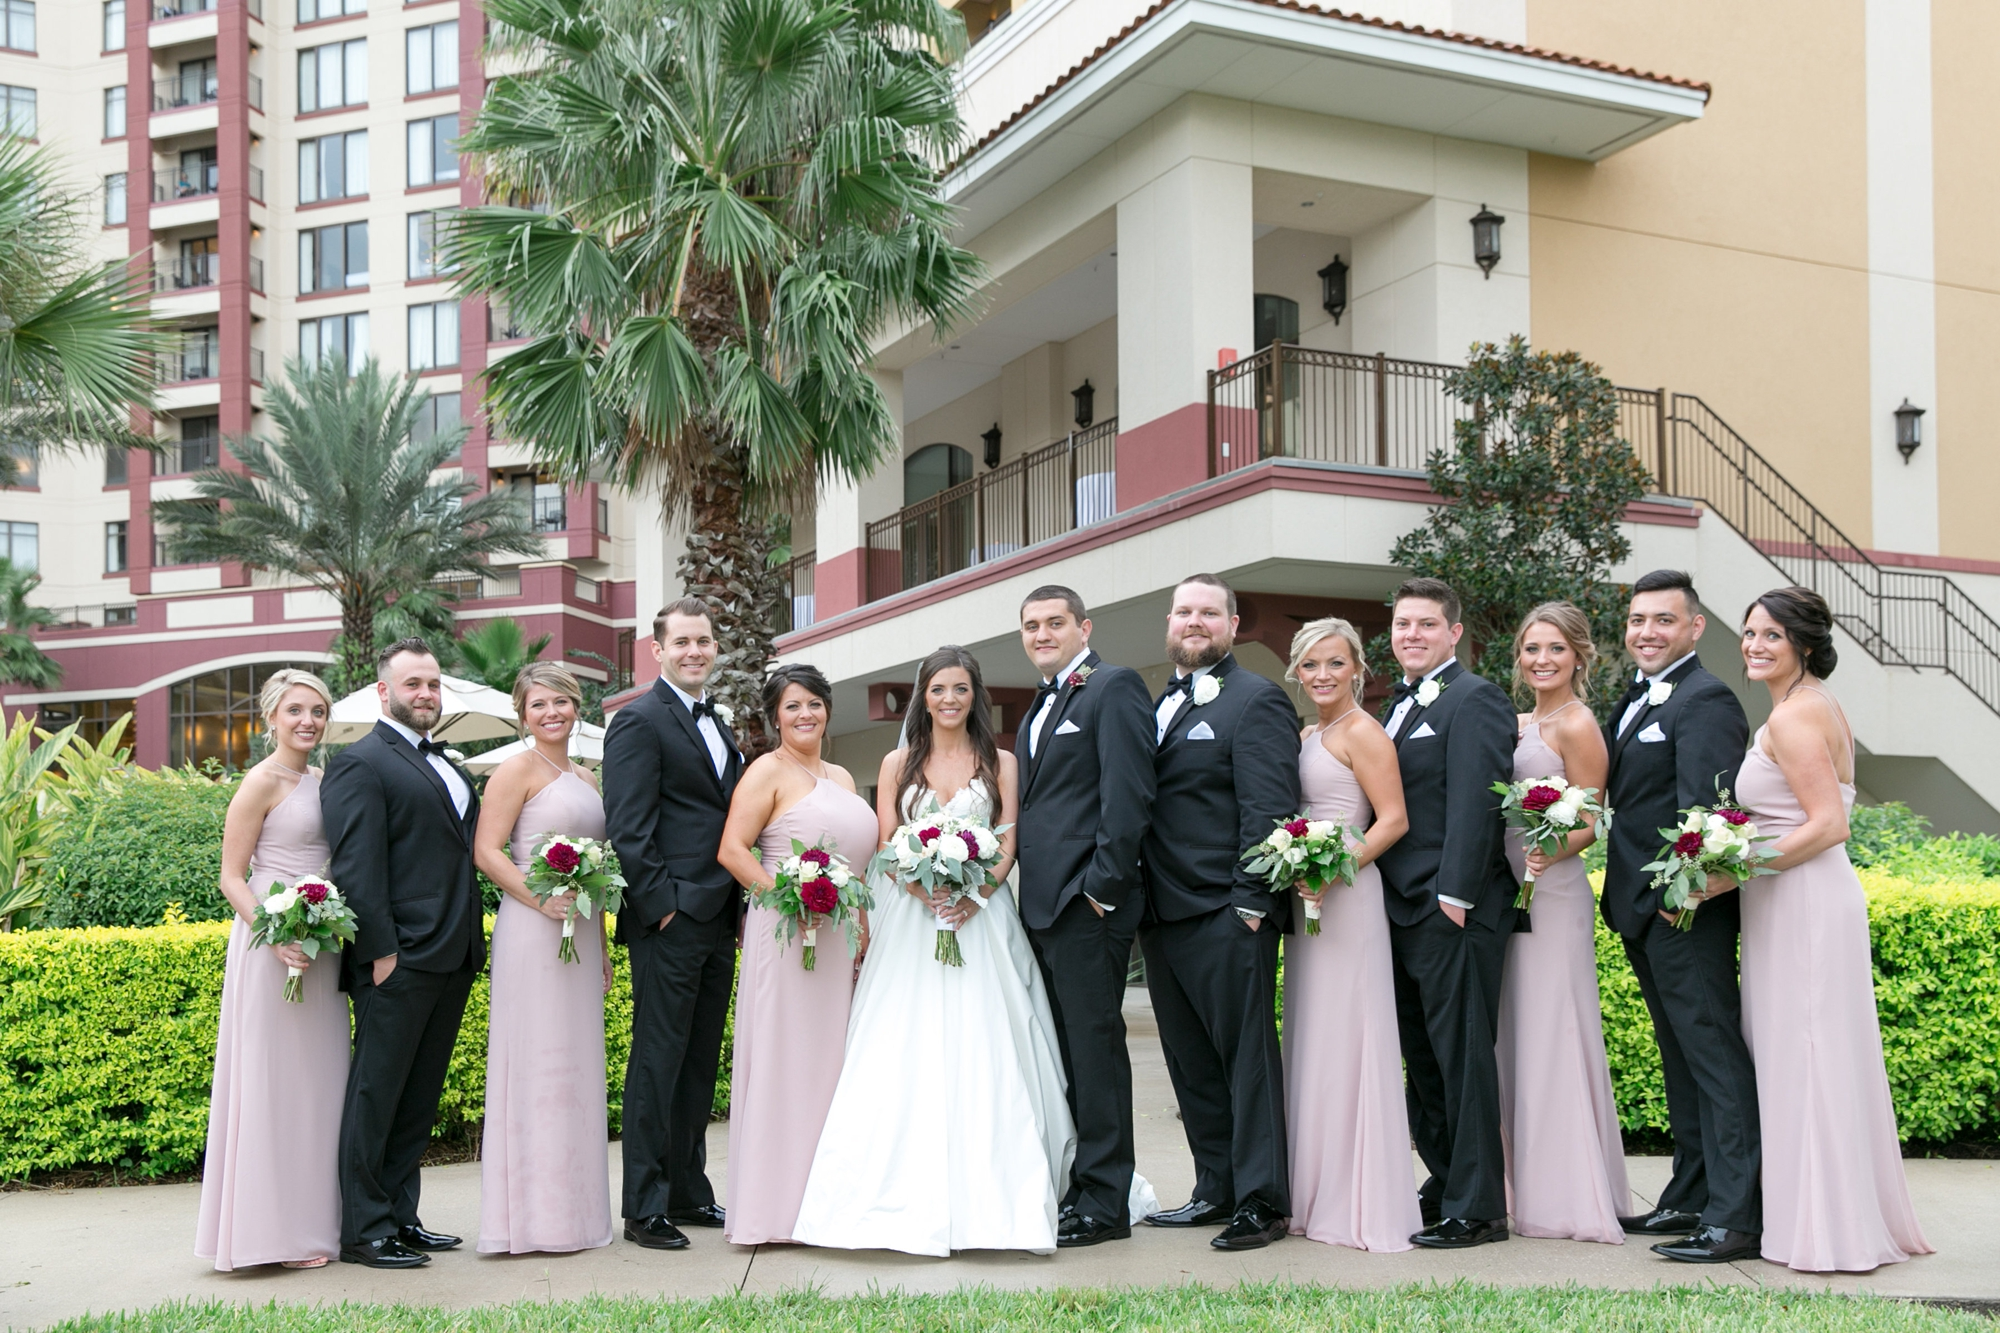 classic wedding party dresses